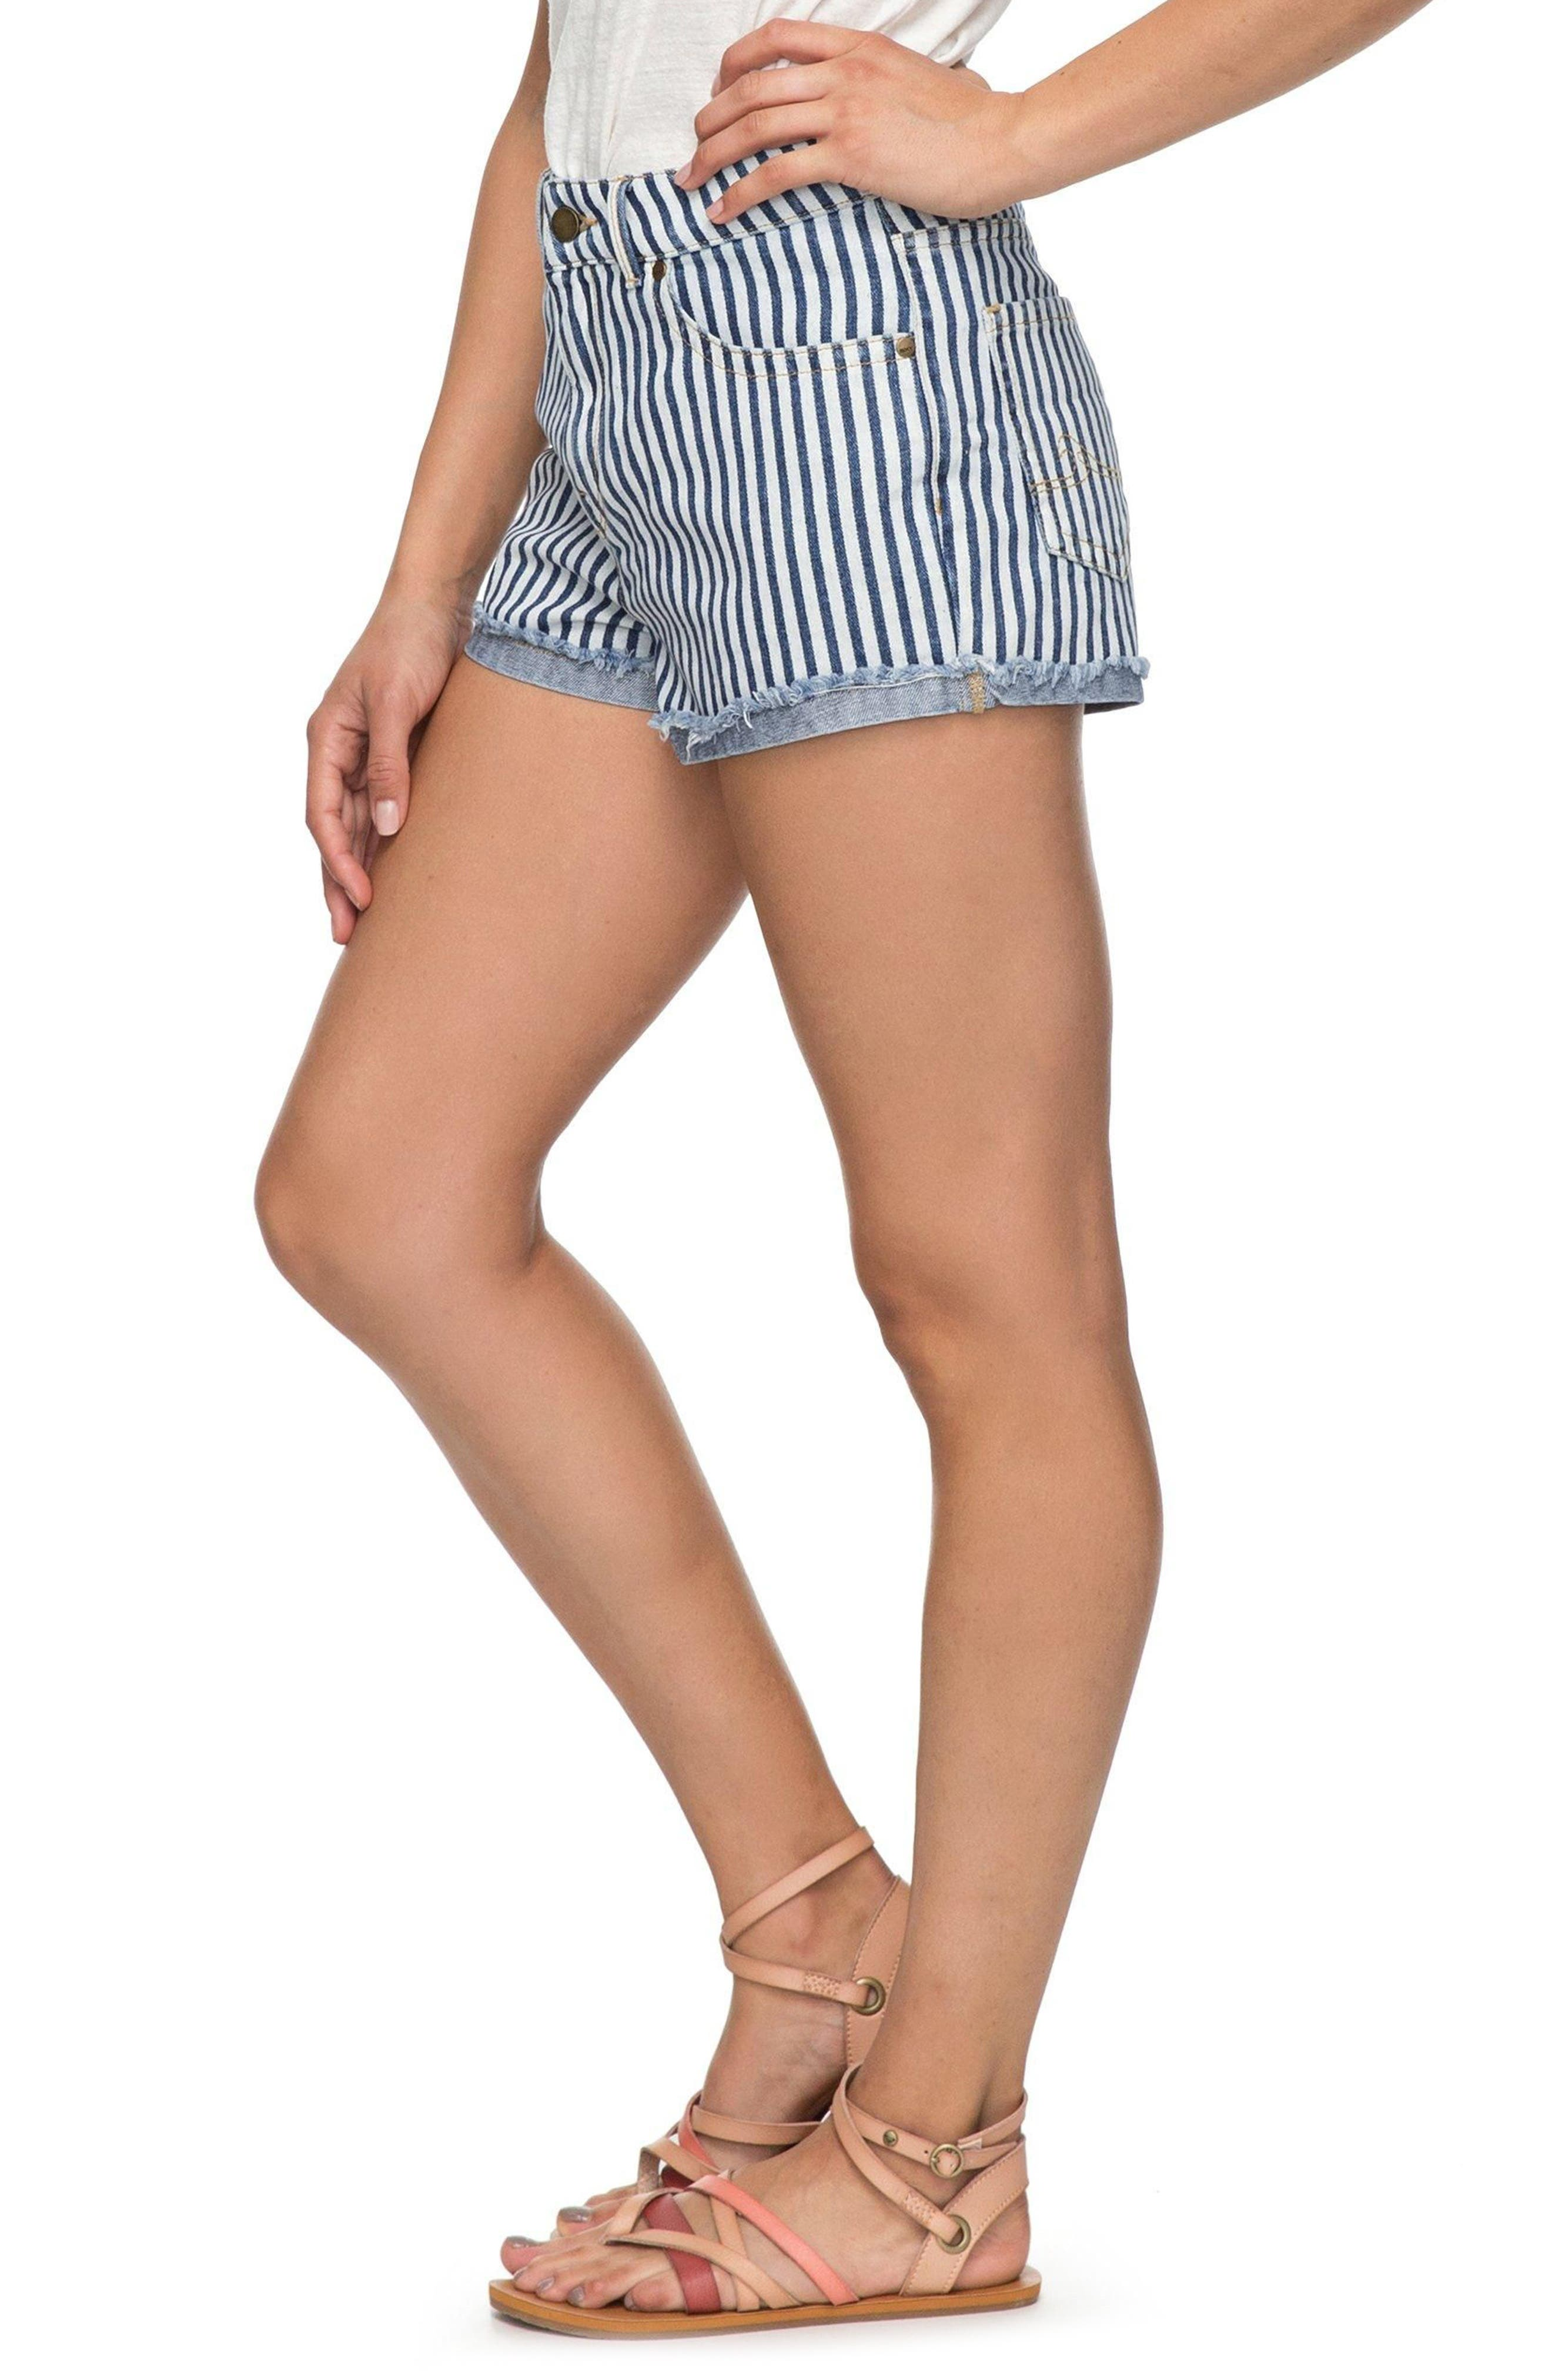 Holbrook Stripe Cotton Shorts,                             Alternate thumbnail 3, color,                             Medium Blue La Vague Stripe